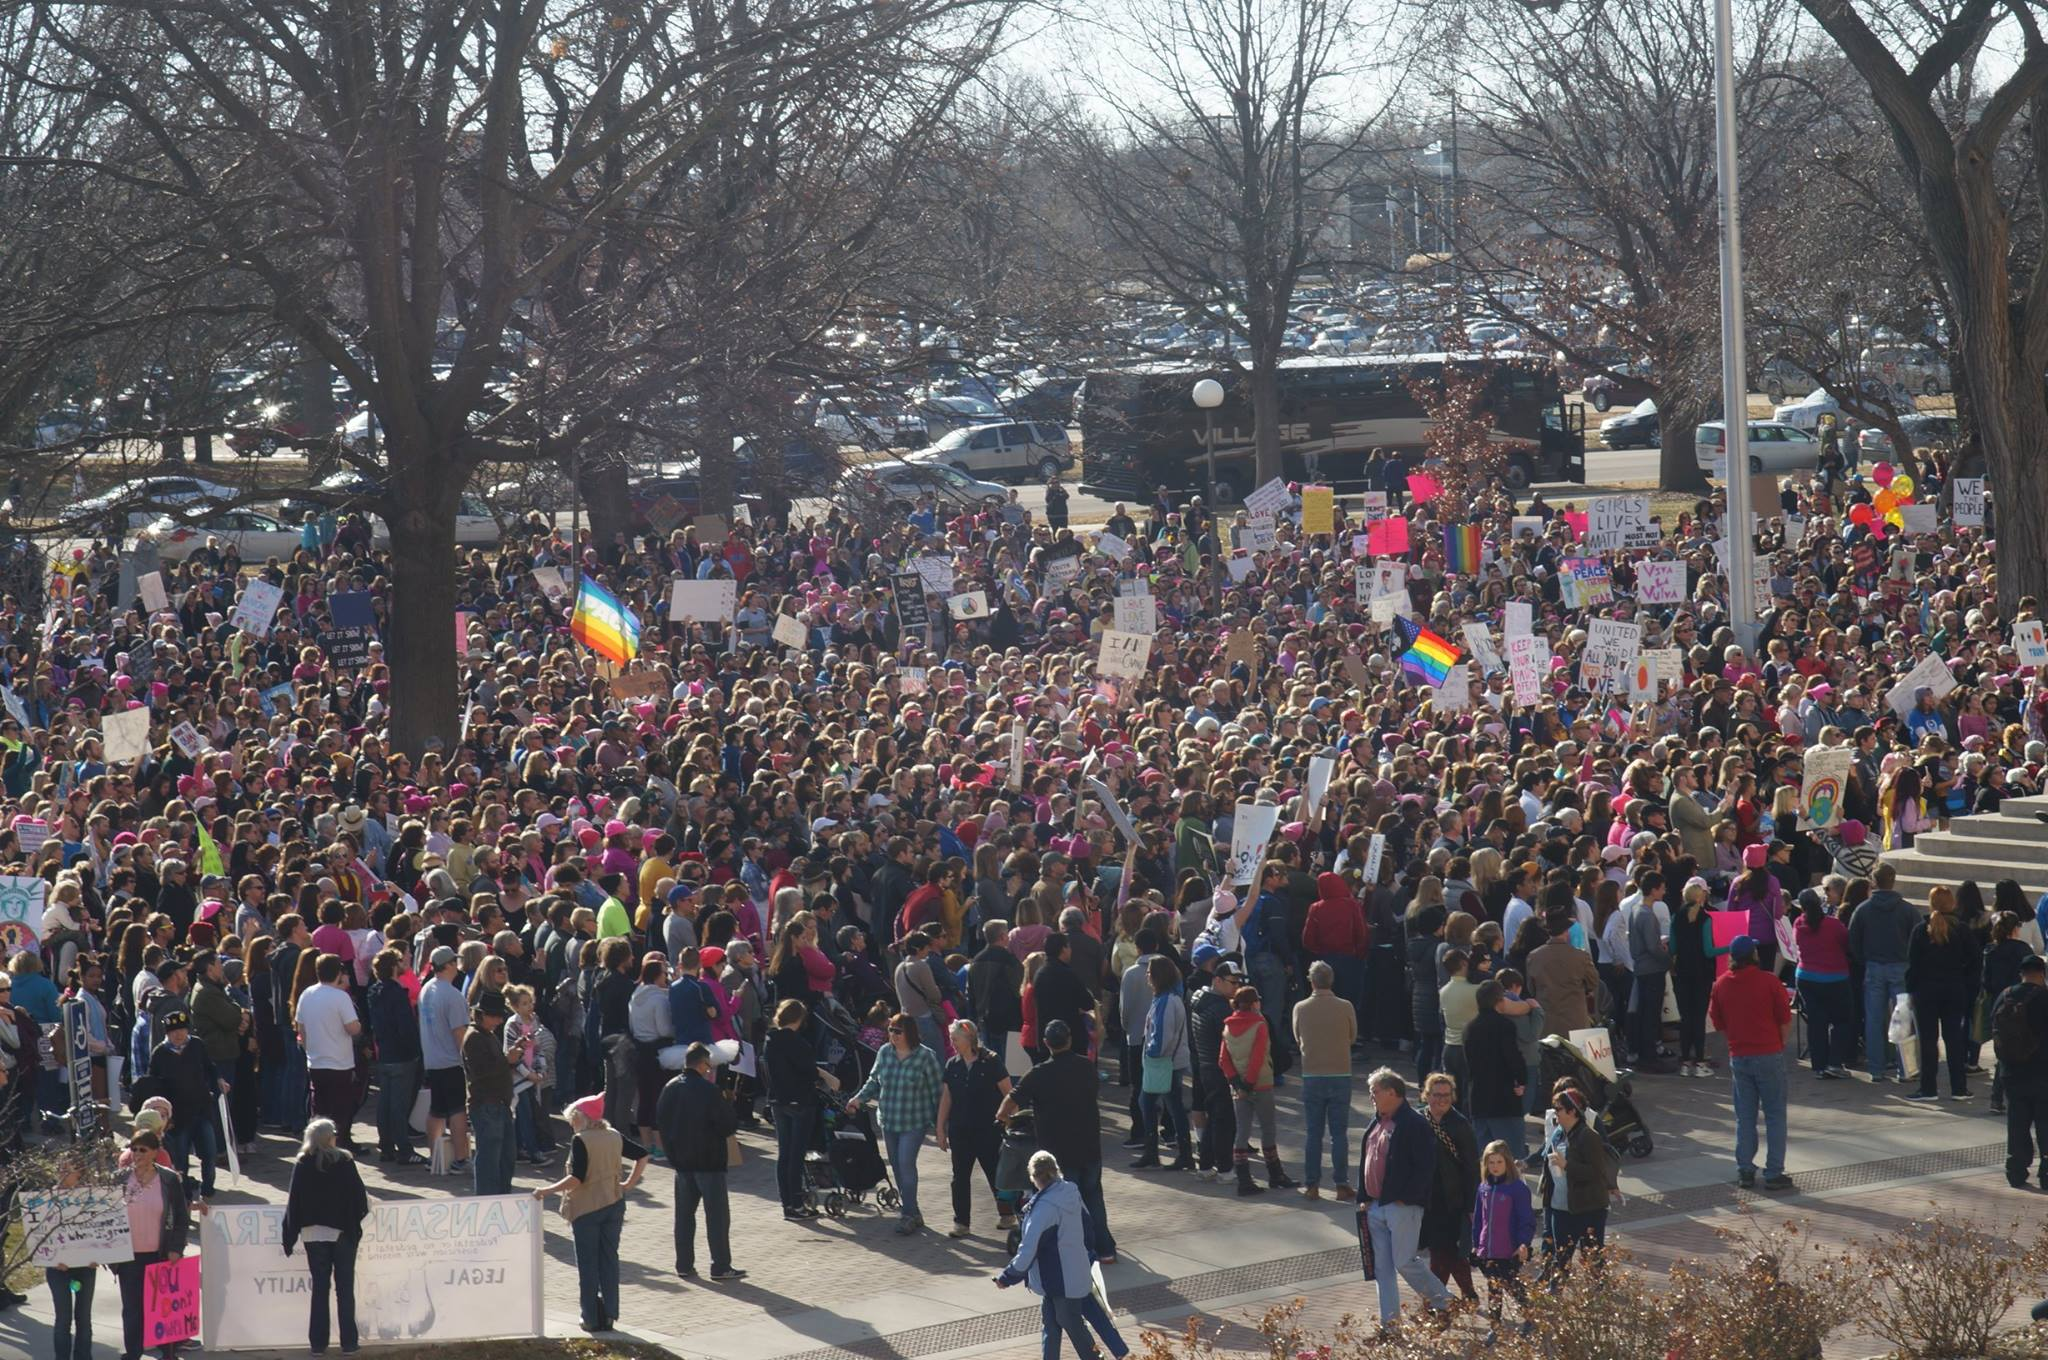 About 2,000 people gathered in Topeka Saturday to demonstrate against President Donald Trump. (Photo by Dan Mantyla)